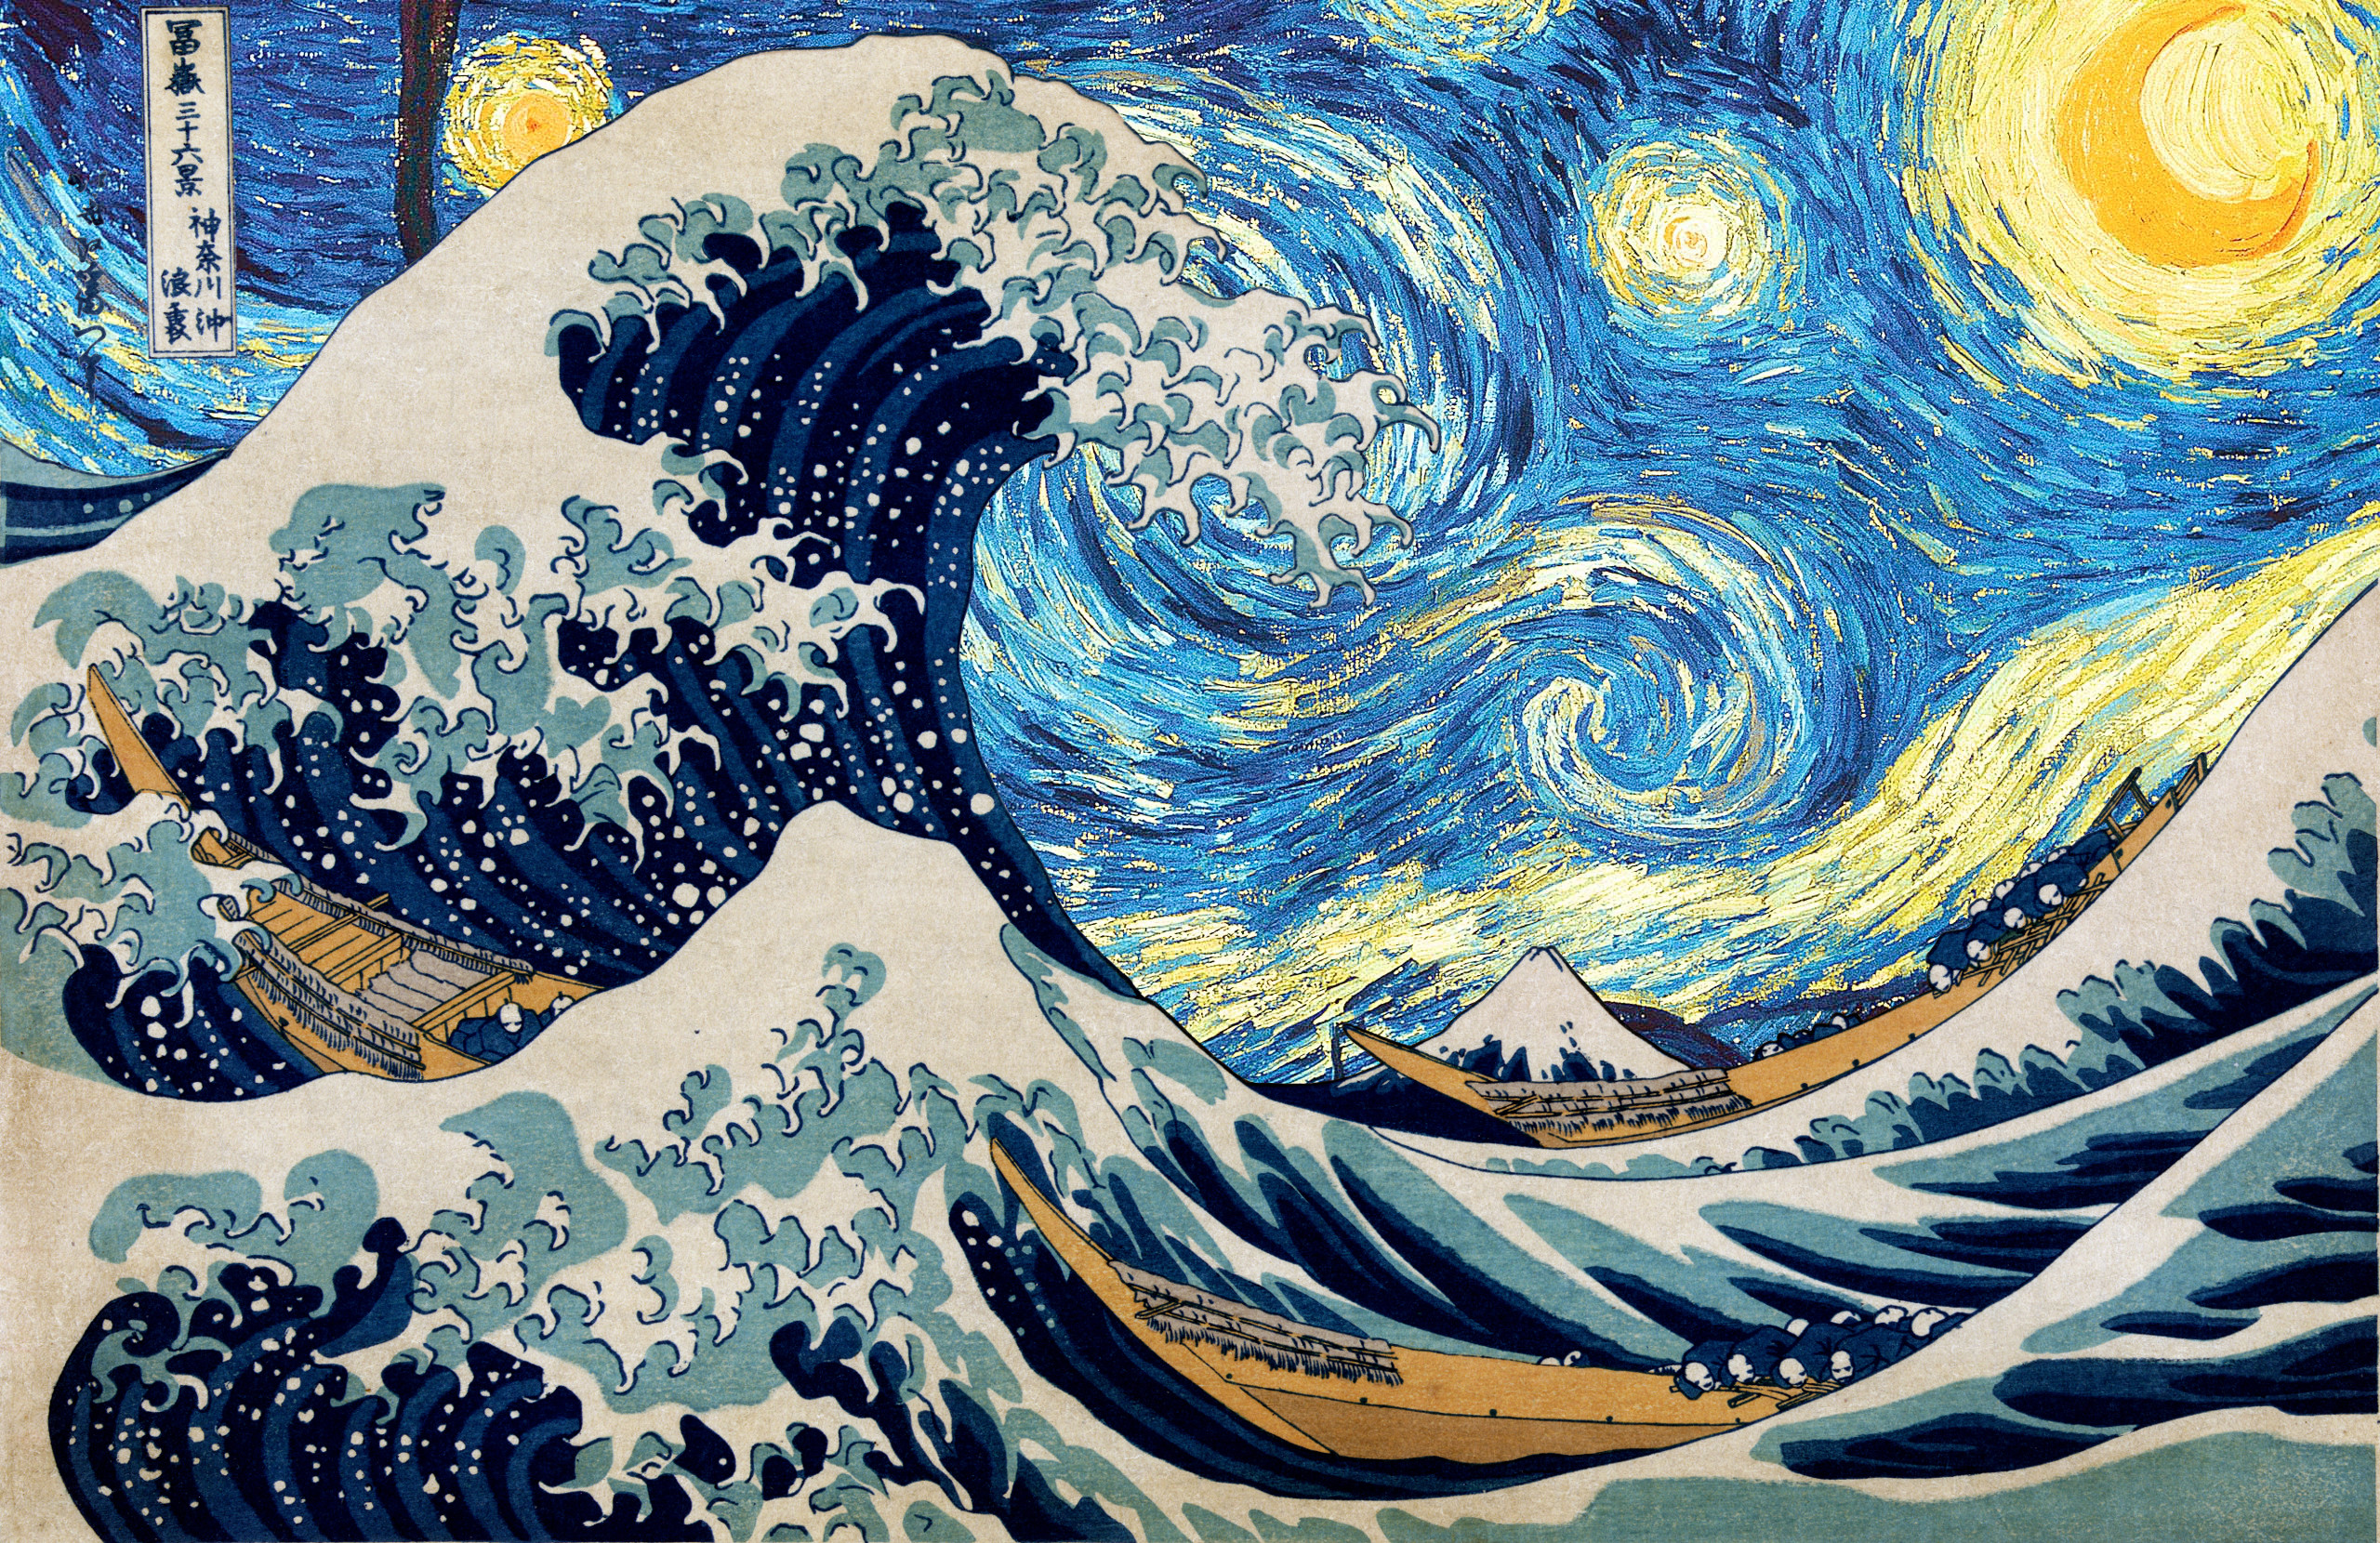 Res: 2560x1660, ... The Starry Wave (Mashup) by Deathonater